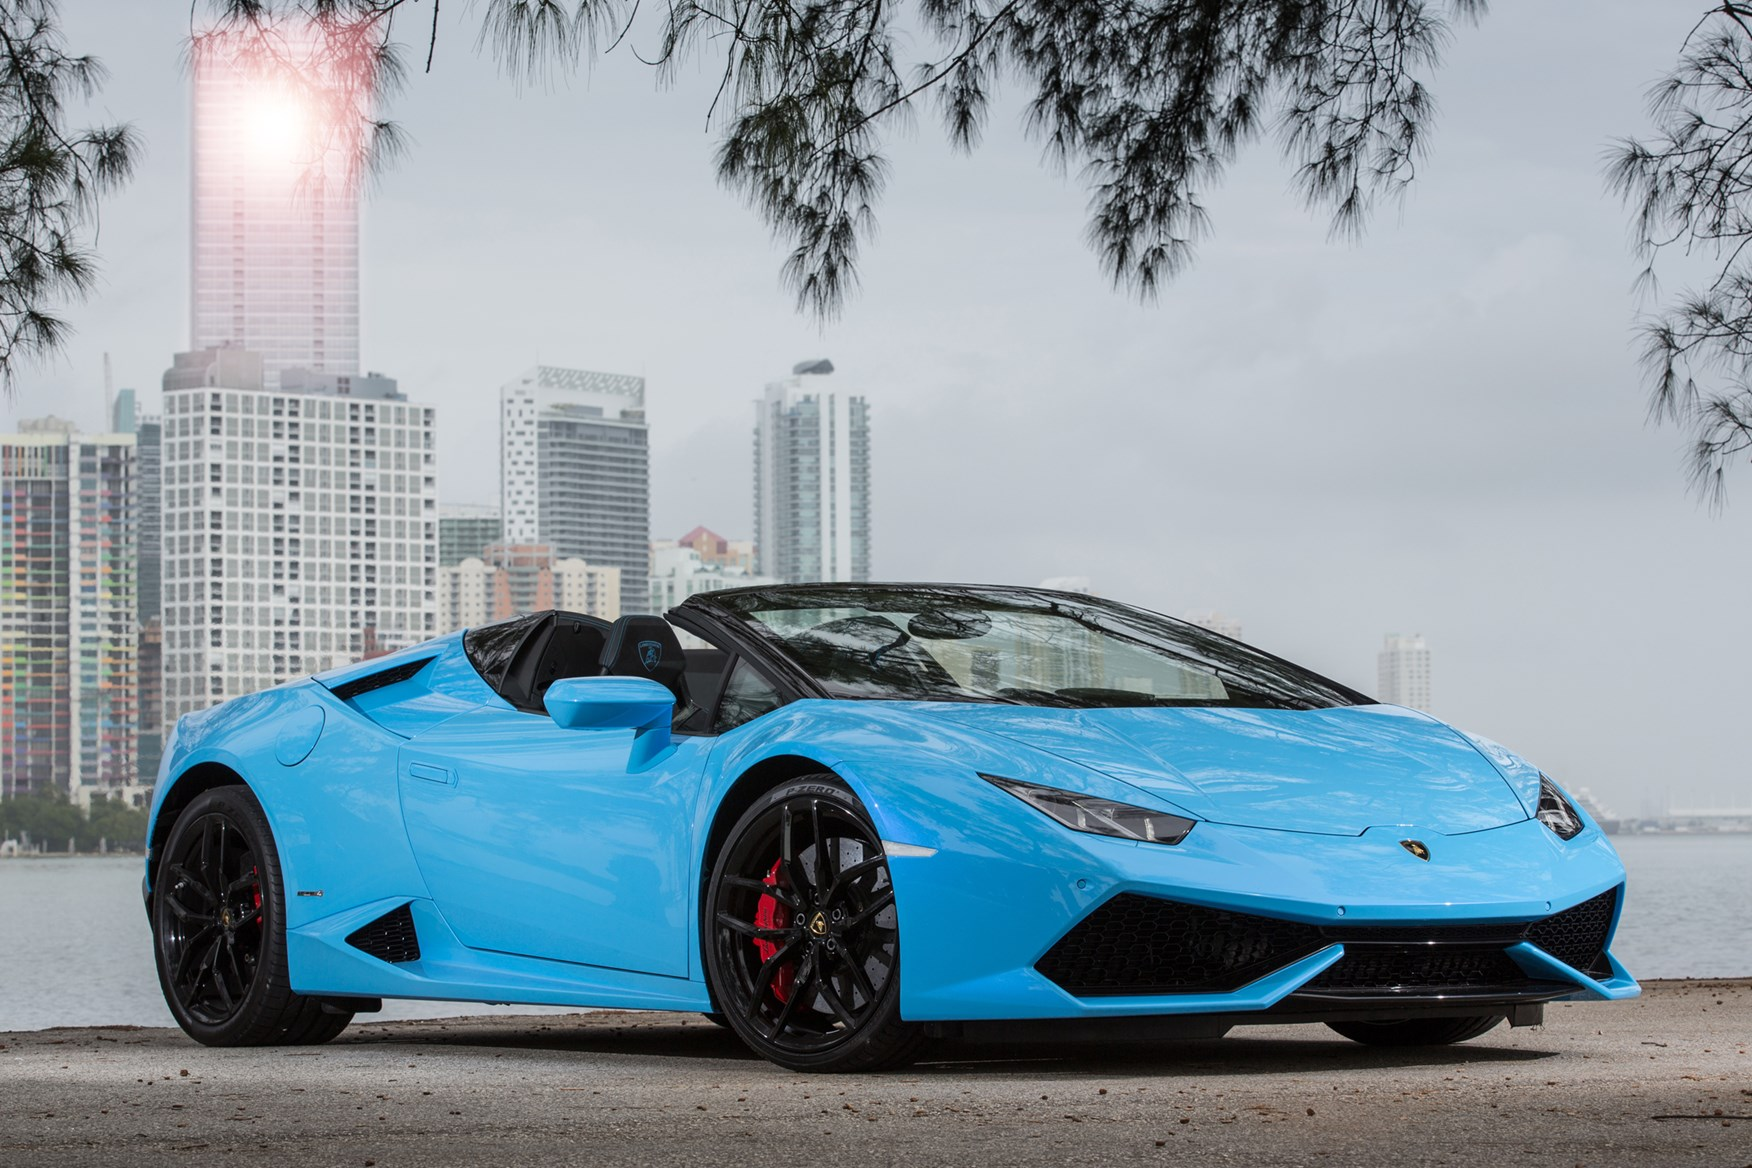 lamborghini huracan spyder review 2015 parkers. Black Bedroom Furniture Sets. Home Design Ideas